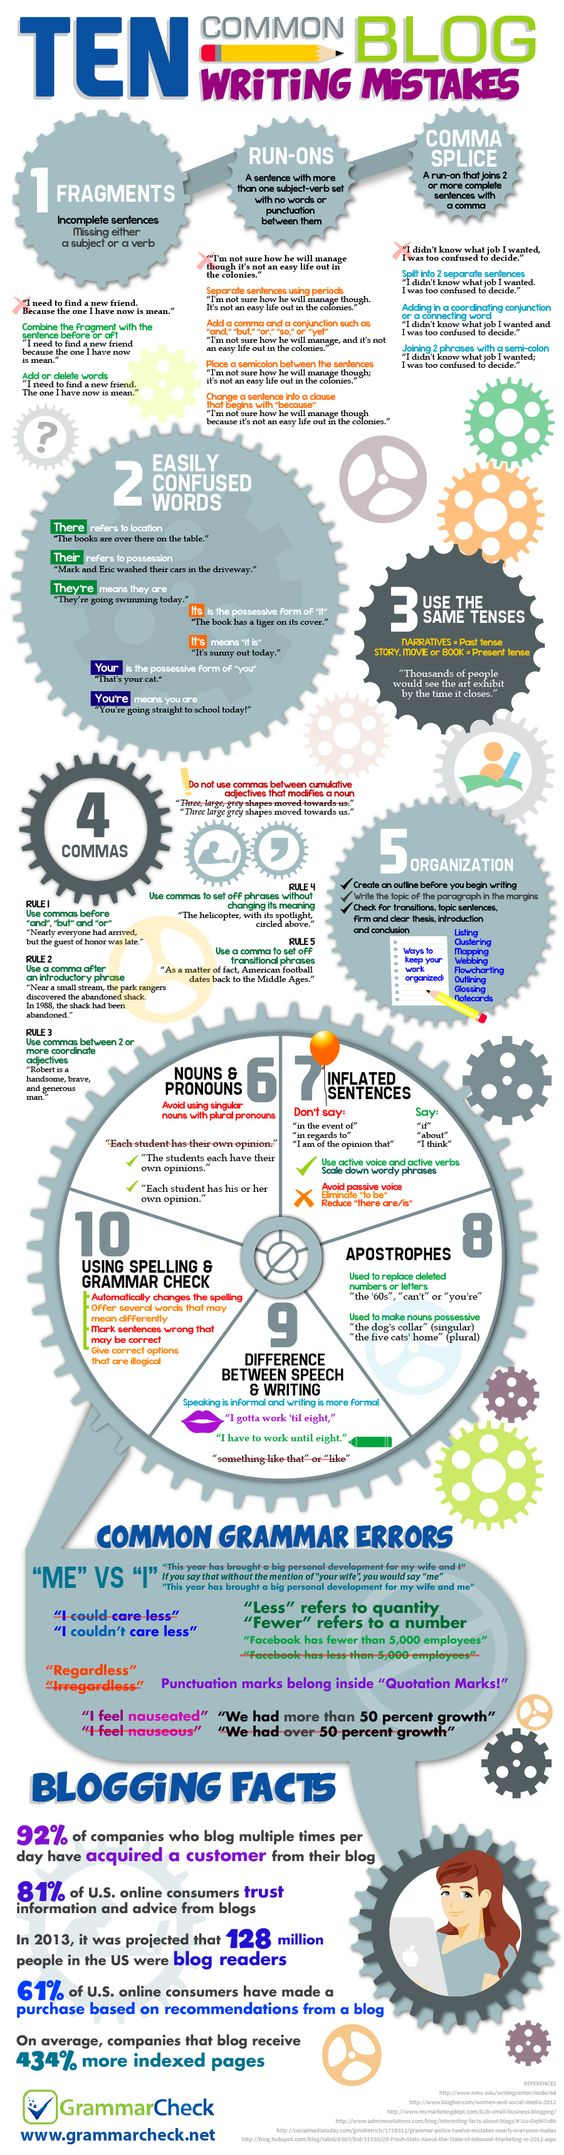 Blog writing tips and mistakes infographic